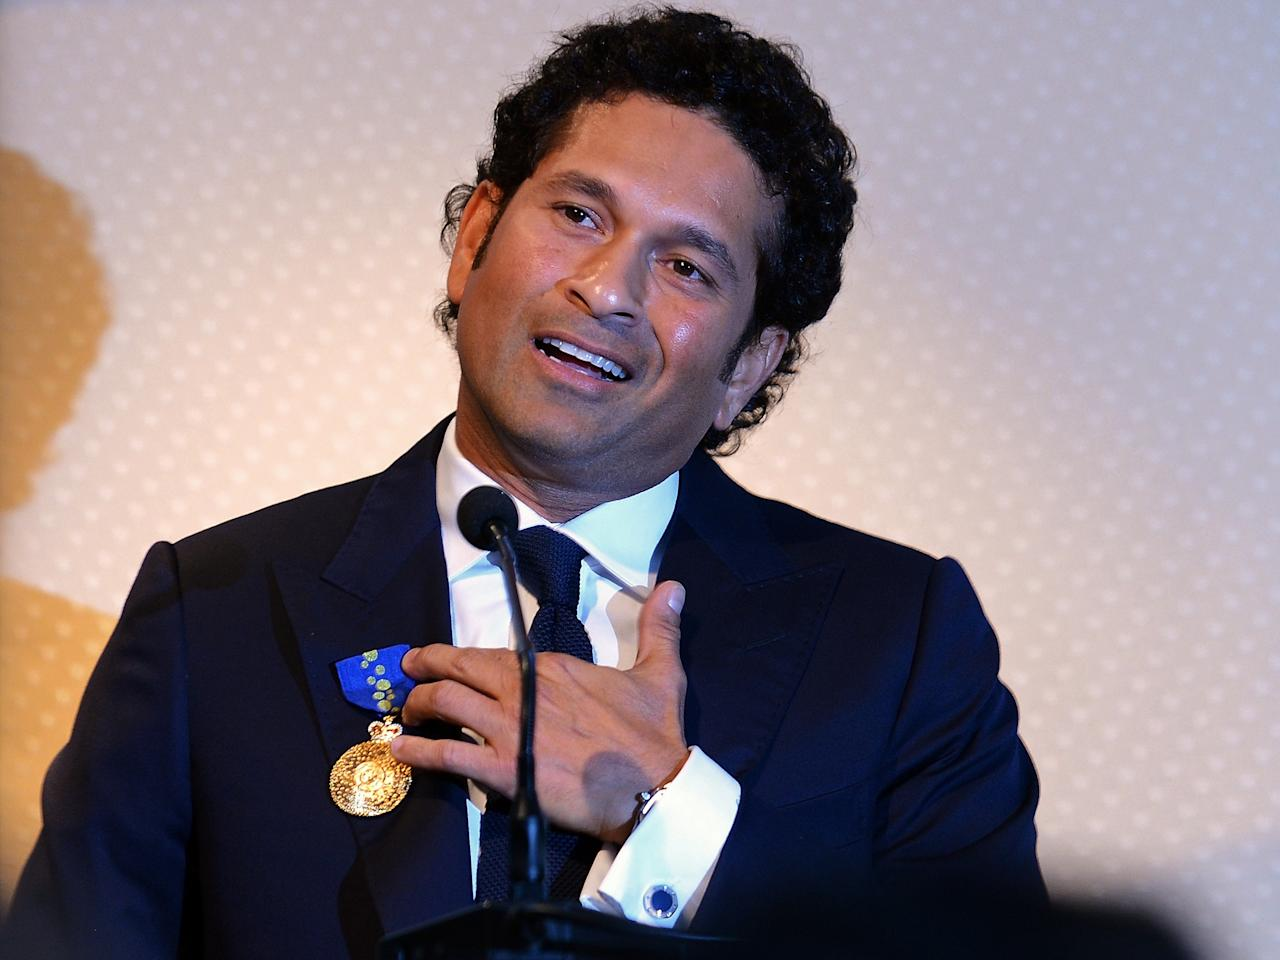 "Indian cricketer Sachin Tendulkar speaks after being conferred with the membership of The Order of Australia by Simon Crean, Australian Minister for Regional Australia, Regional Development and Local Government, during a ceremony in Mumbai on November 6, 2012. India's record-breaking batsman Sachin Tendulkar on November 6 was conferred with membership of the Order of Australia. Australian Prime Minister Julia Gillard, who announced Tendulkar's membership to the Order during a three-day state visit to India last month, told reporters that Tendulkar deserved the ""special honour"" because he was a ""very special cricketer"". AFP PHOTO/ INDRANIL MUKHERJEE"